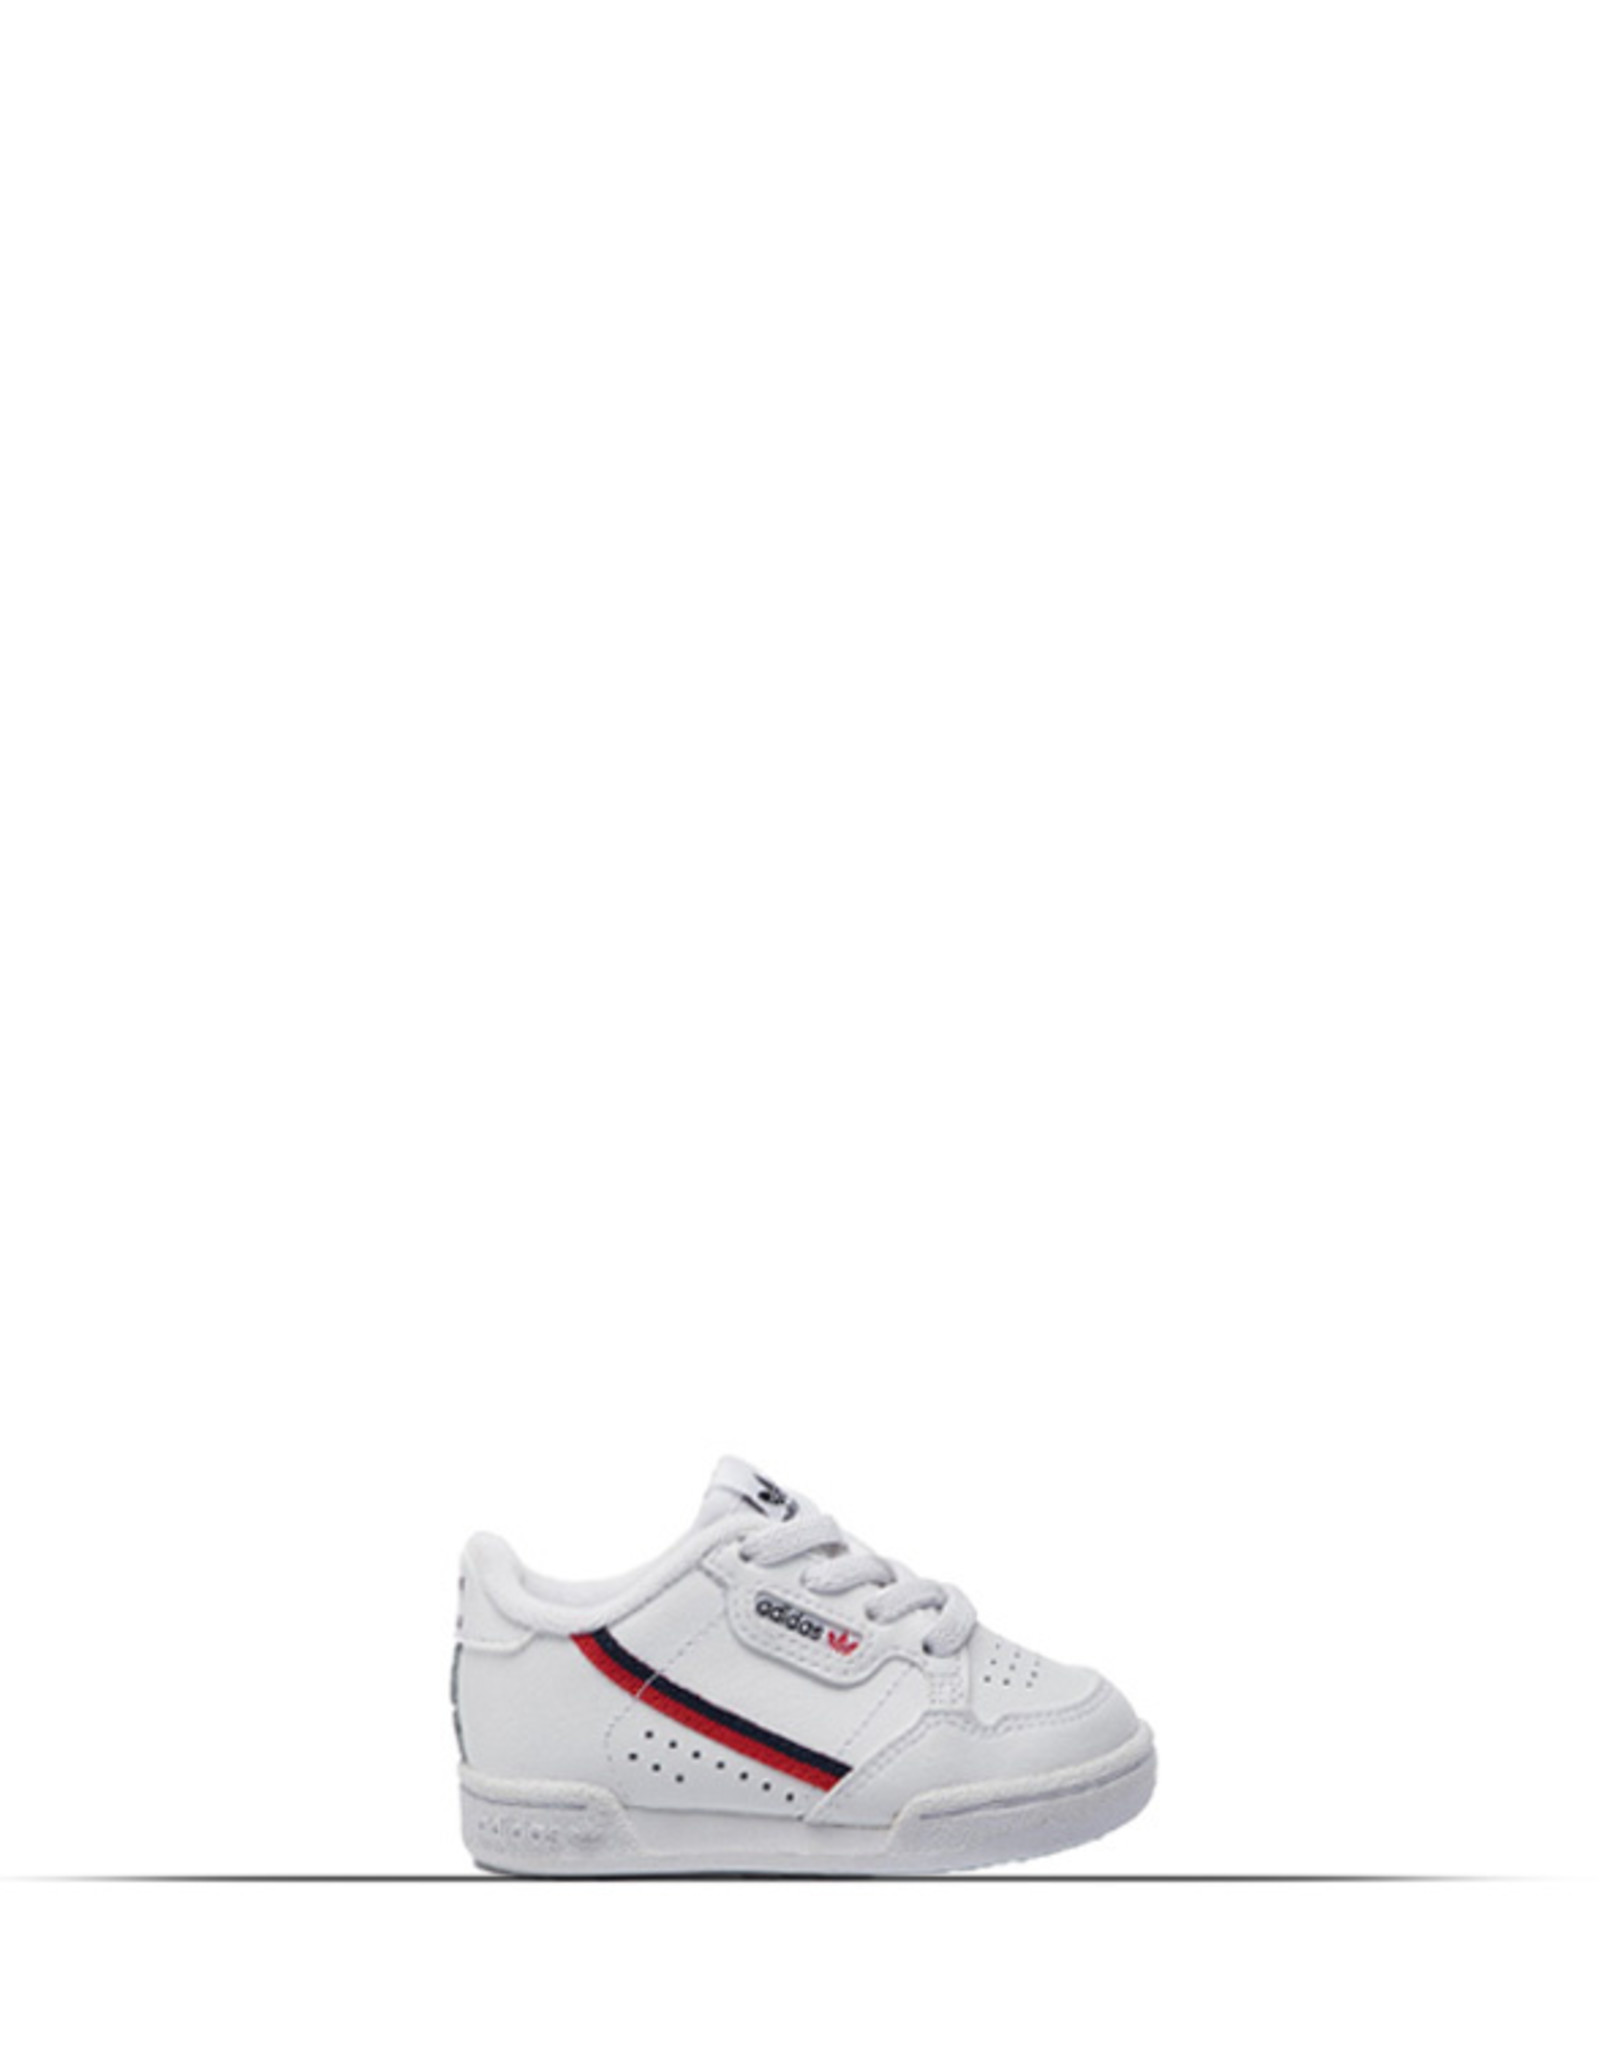 ADIDAS CONTINENTAL 80 WHITE CLOUD SCARLET RED KIDS MINI